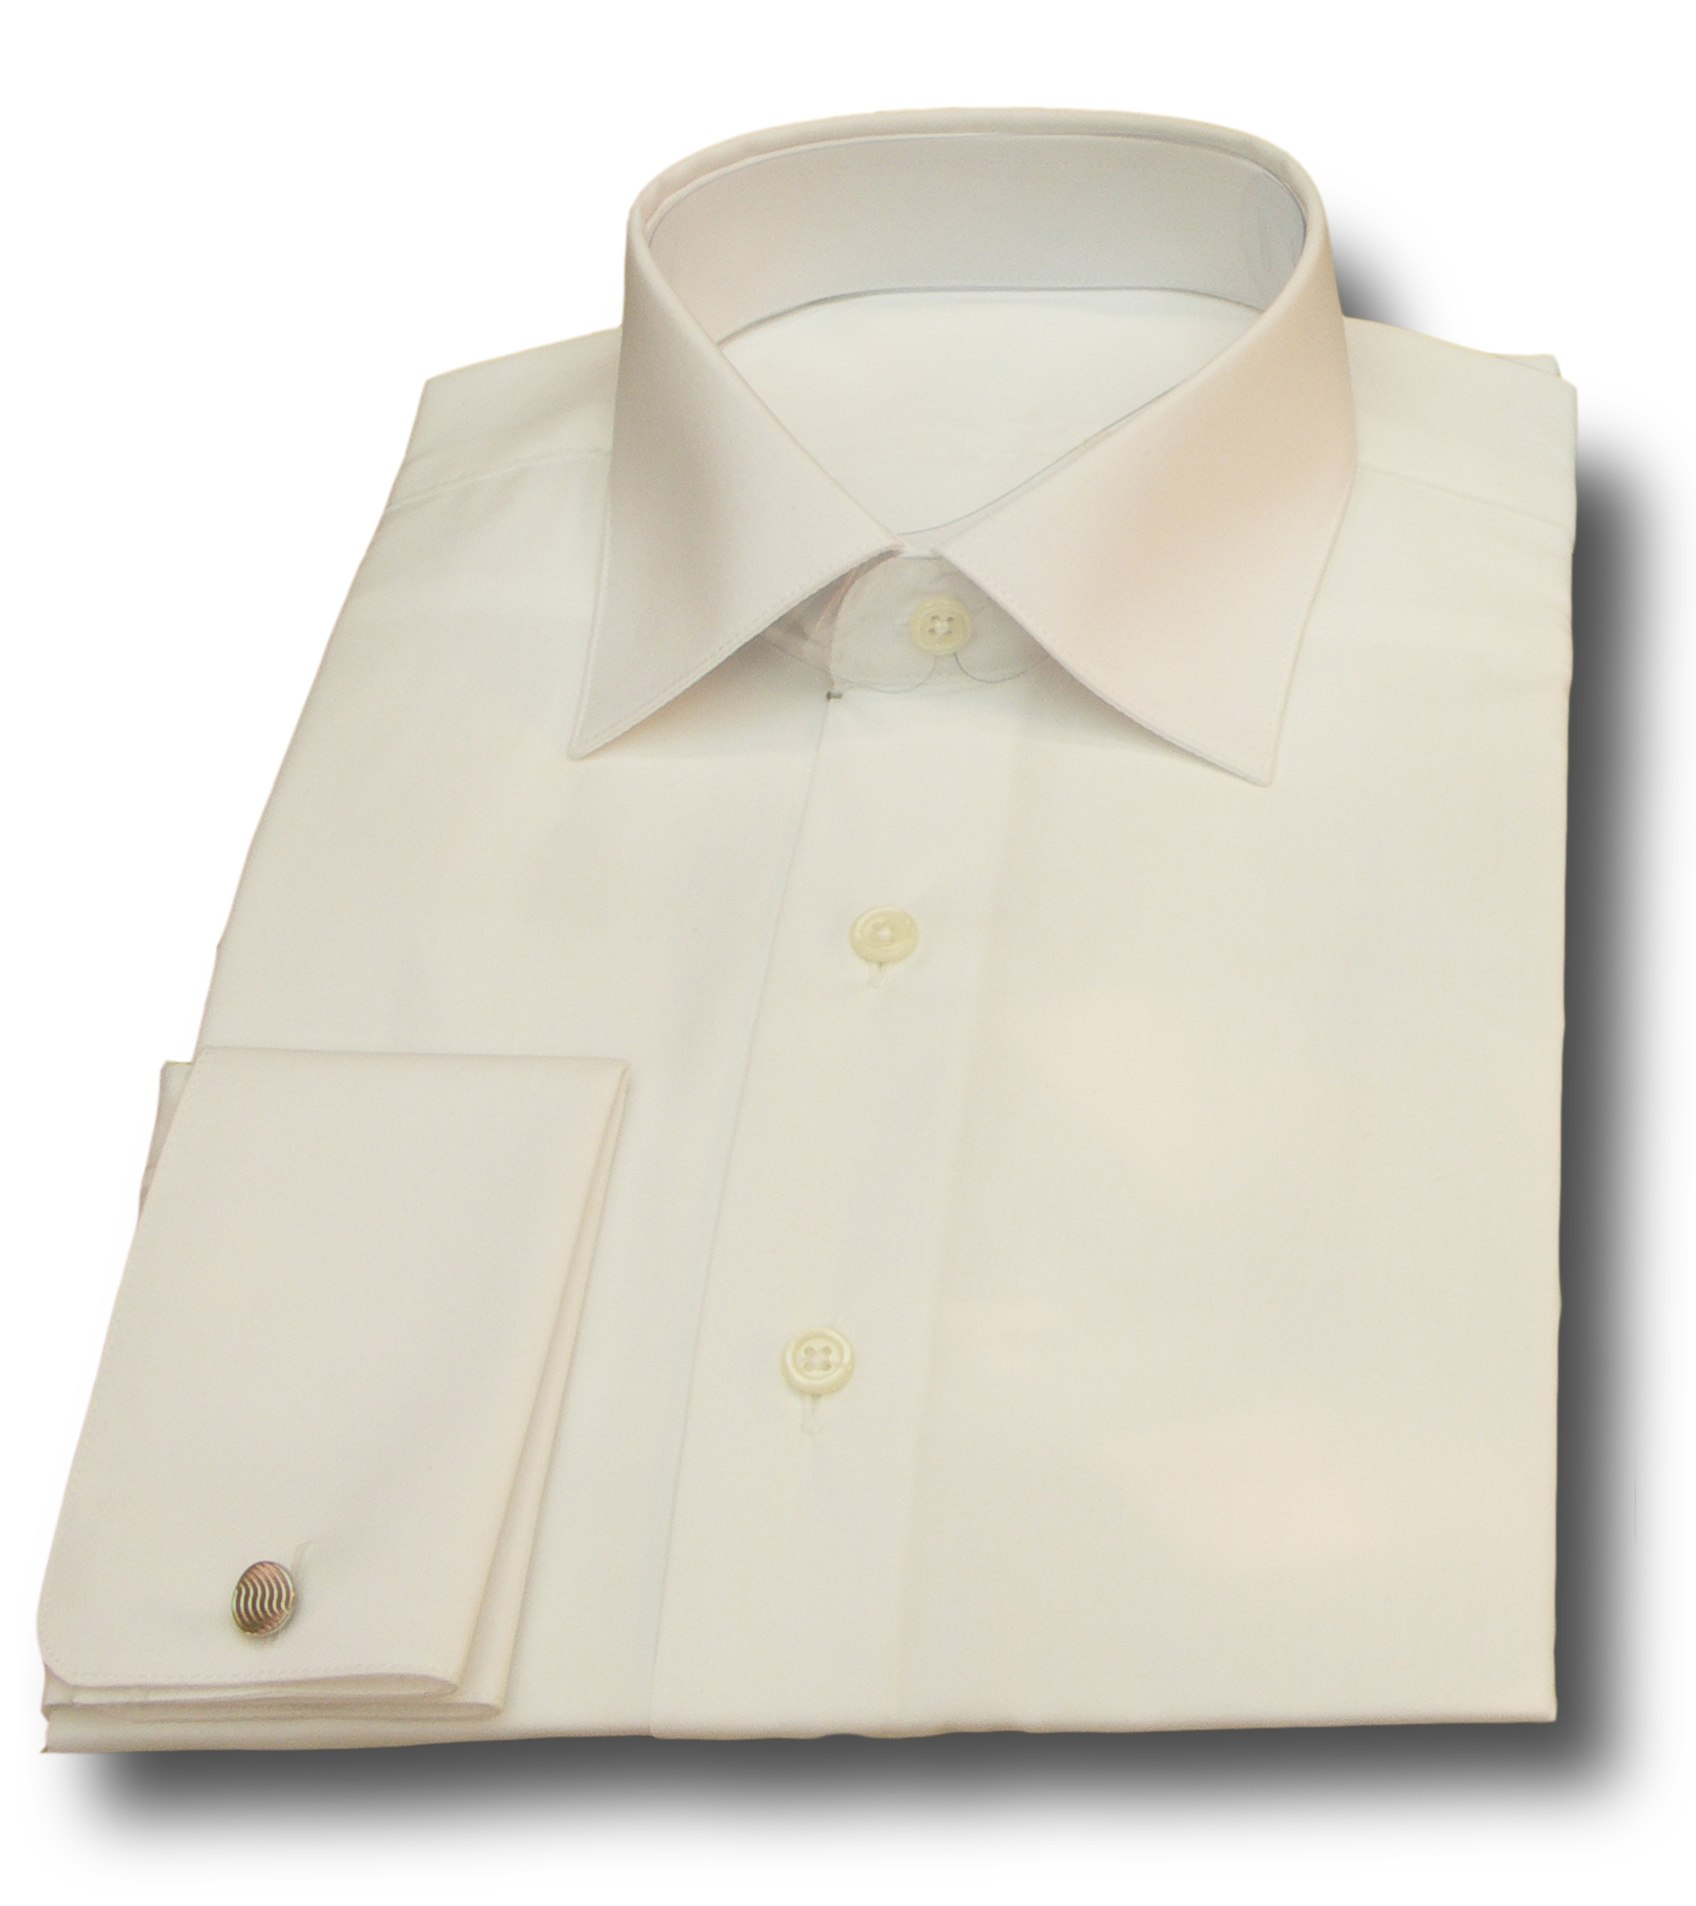 9322d3e4cff Dress shirt - The complete information and online sale with free shipping.  Order and buy now for the lowest price in the best online store!